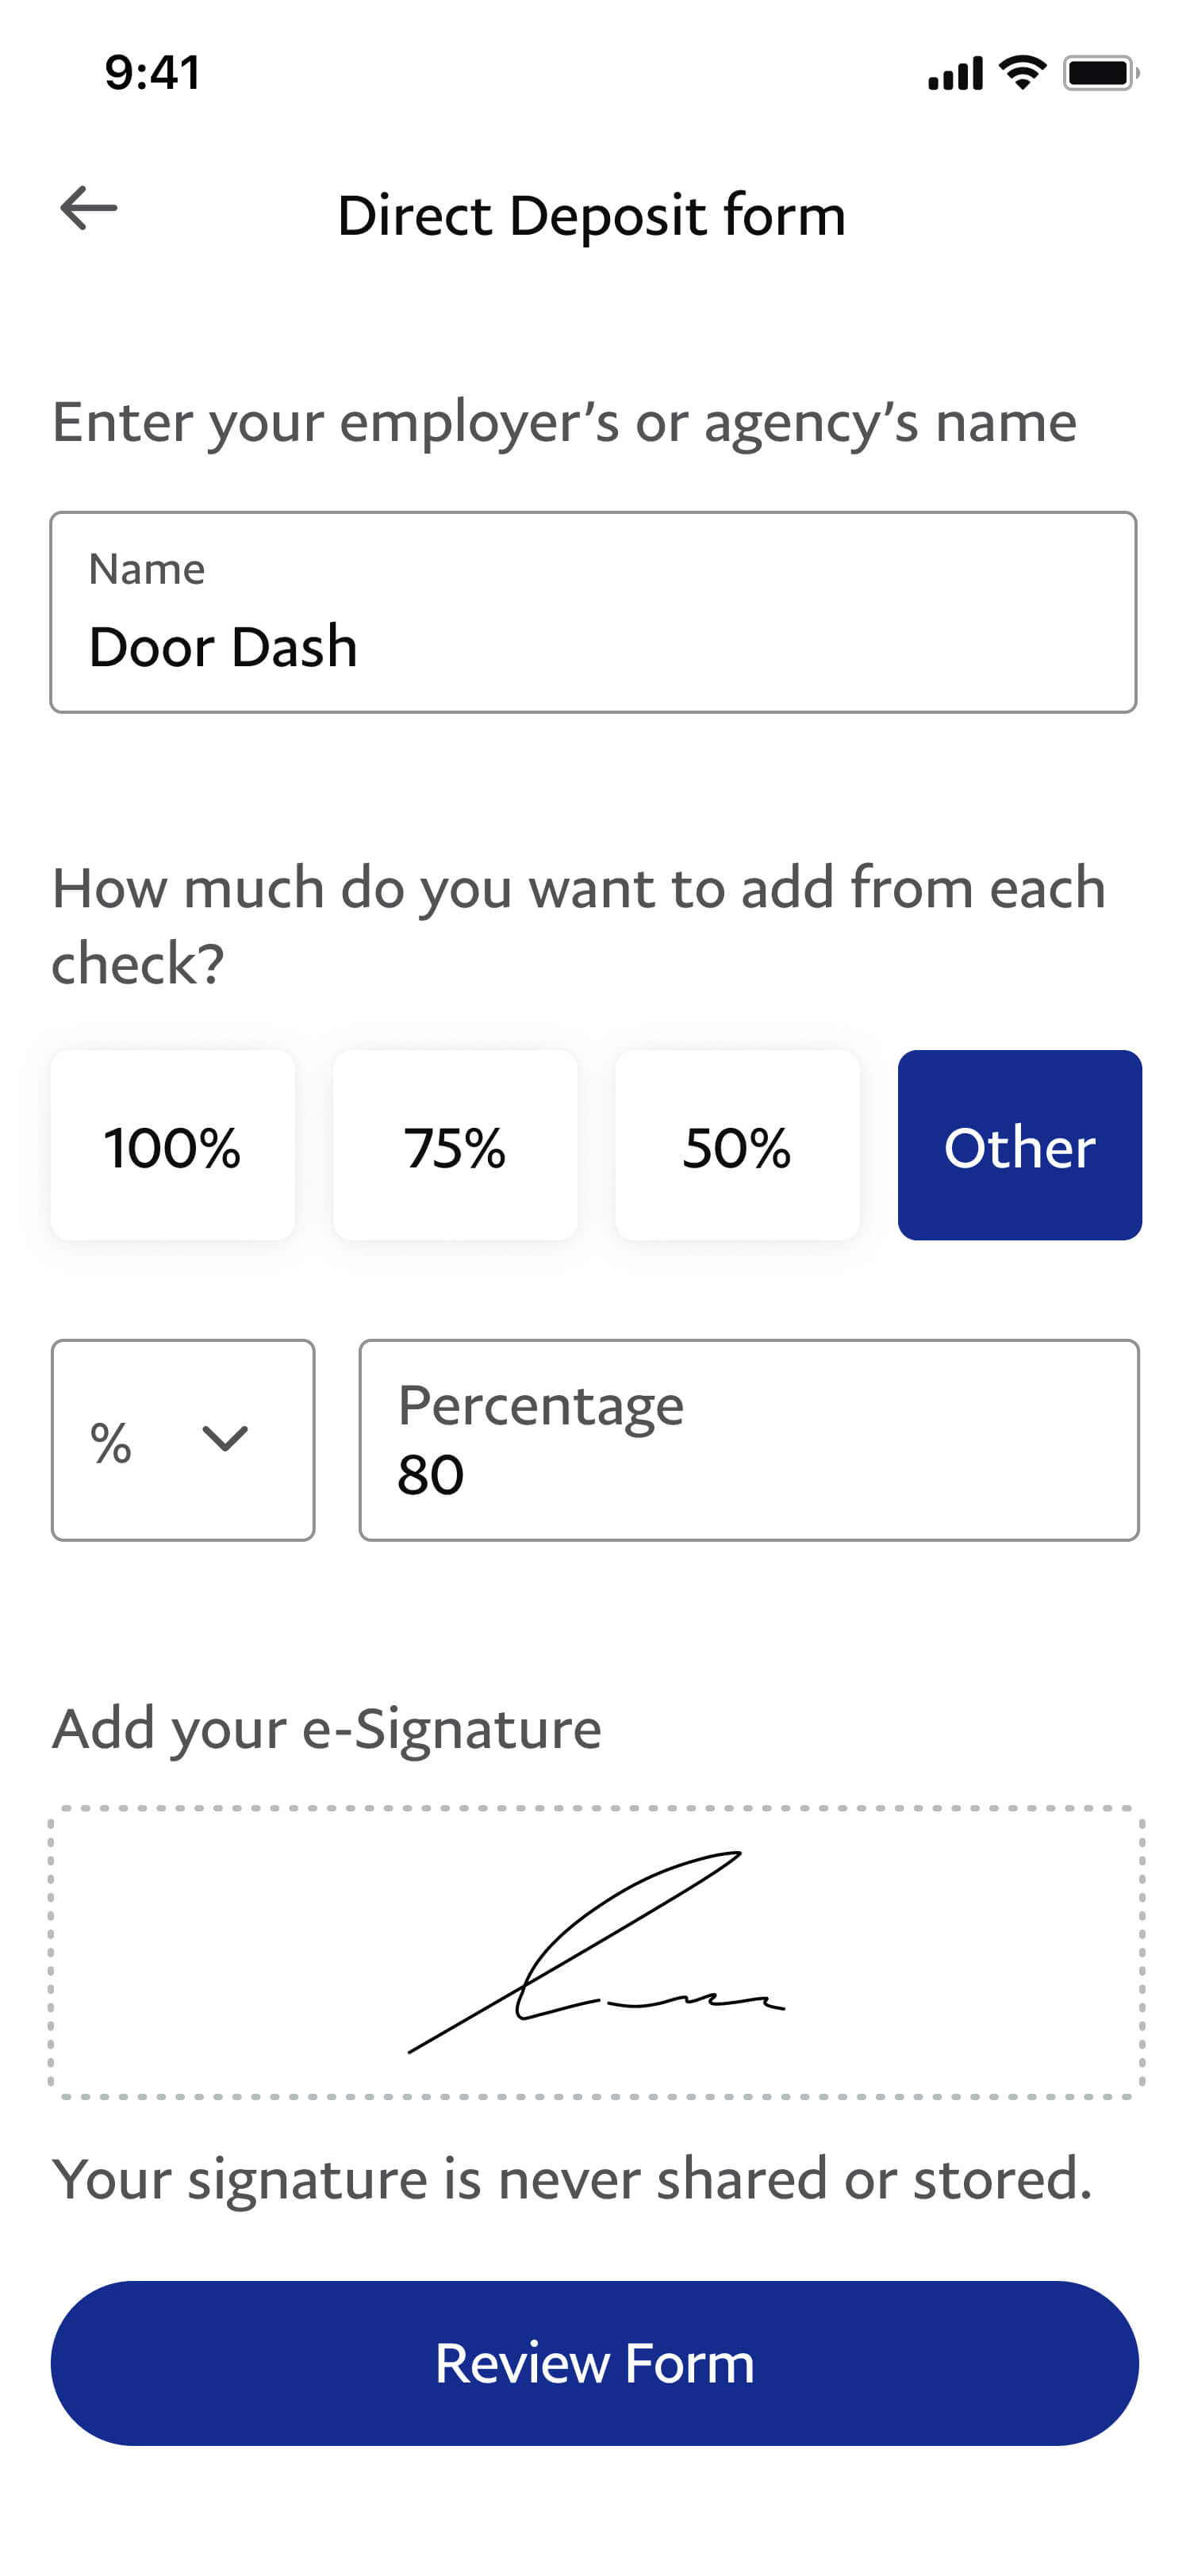 Confirm and submit your Direct Deposit form by selecting Review Form